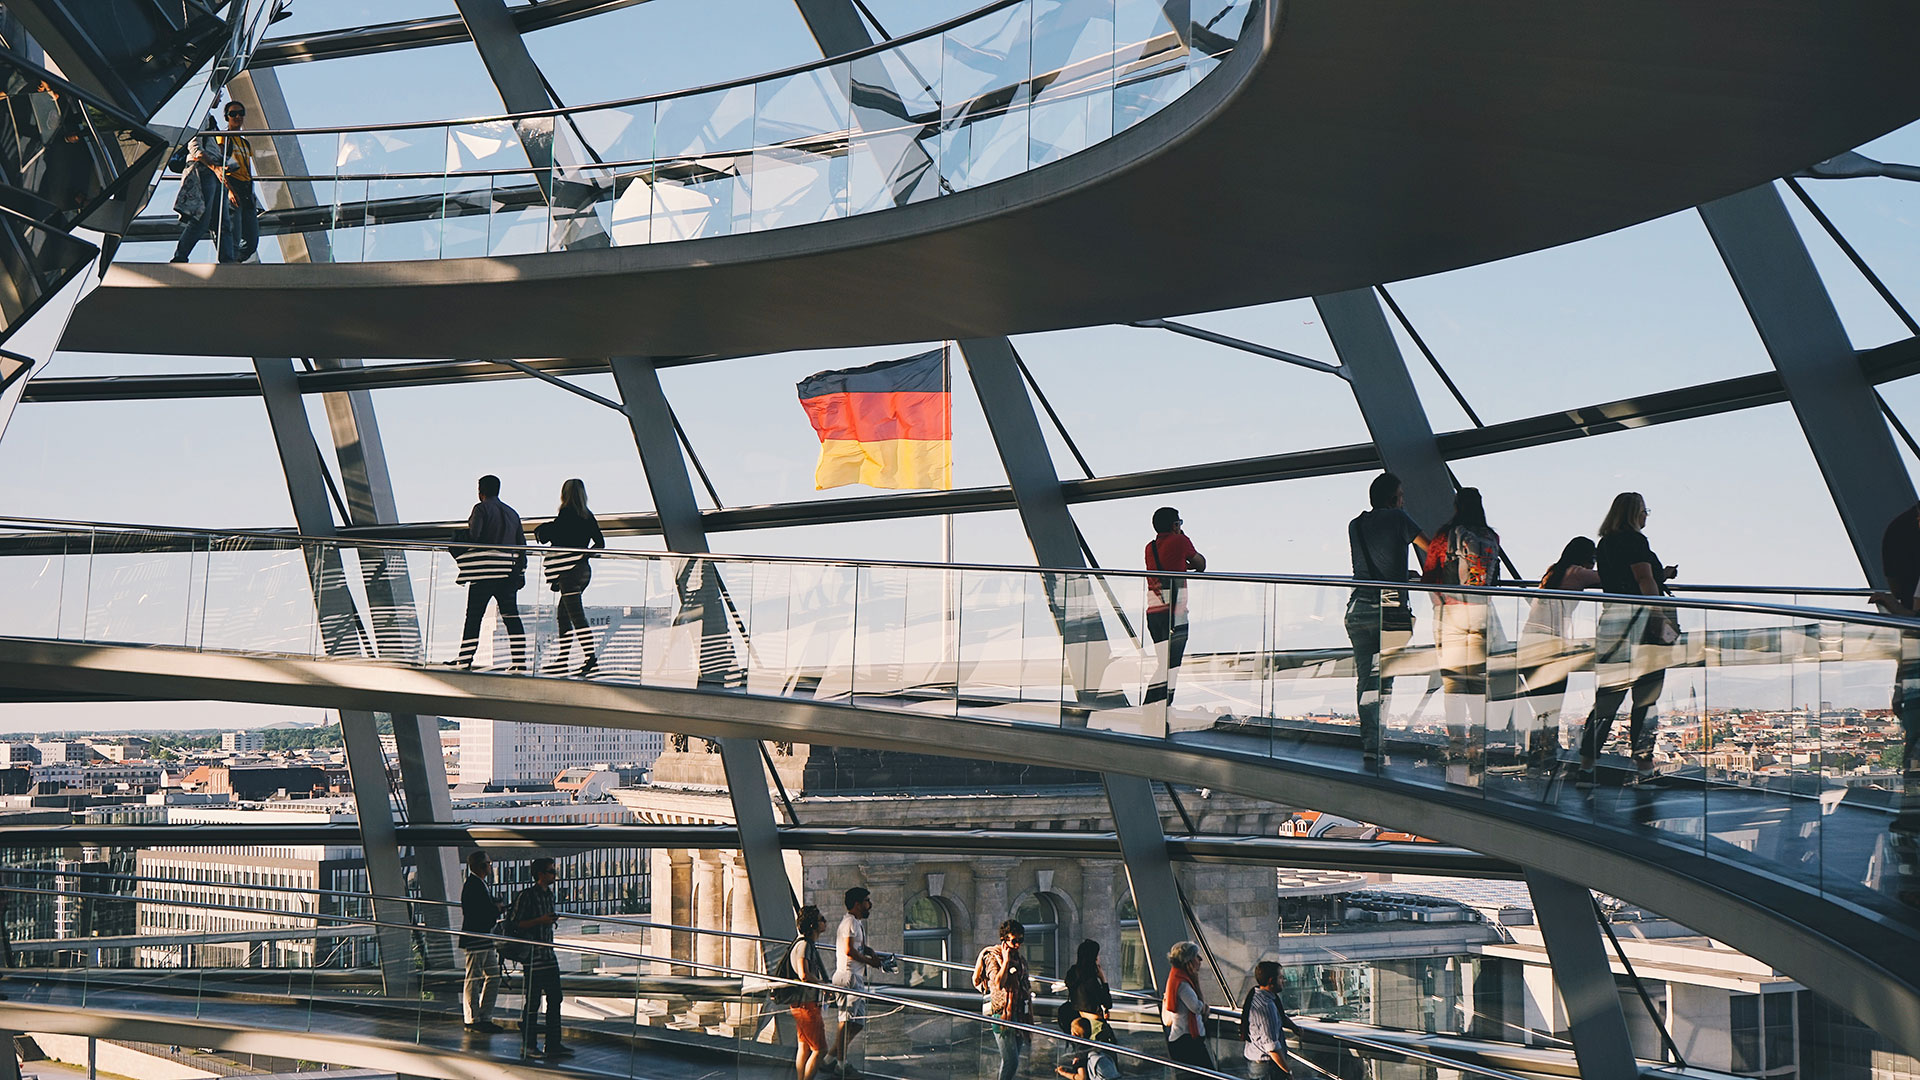 The dome of the Reichstag Building in Berlin (AC Almelor, Unsplash)